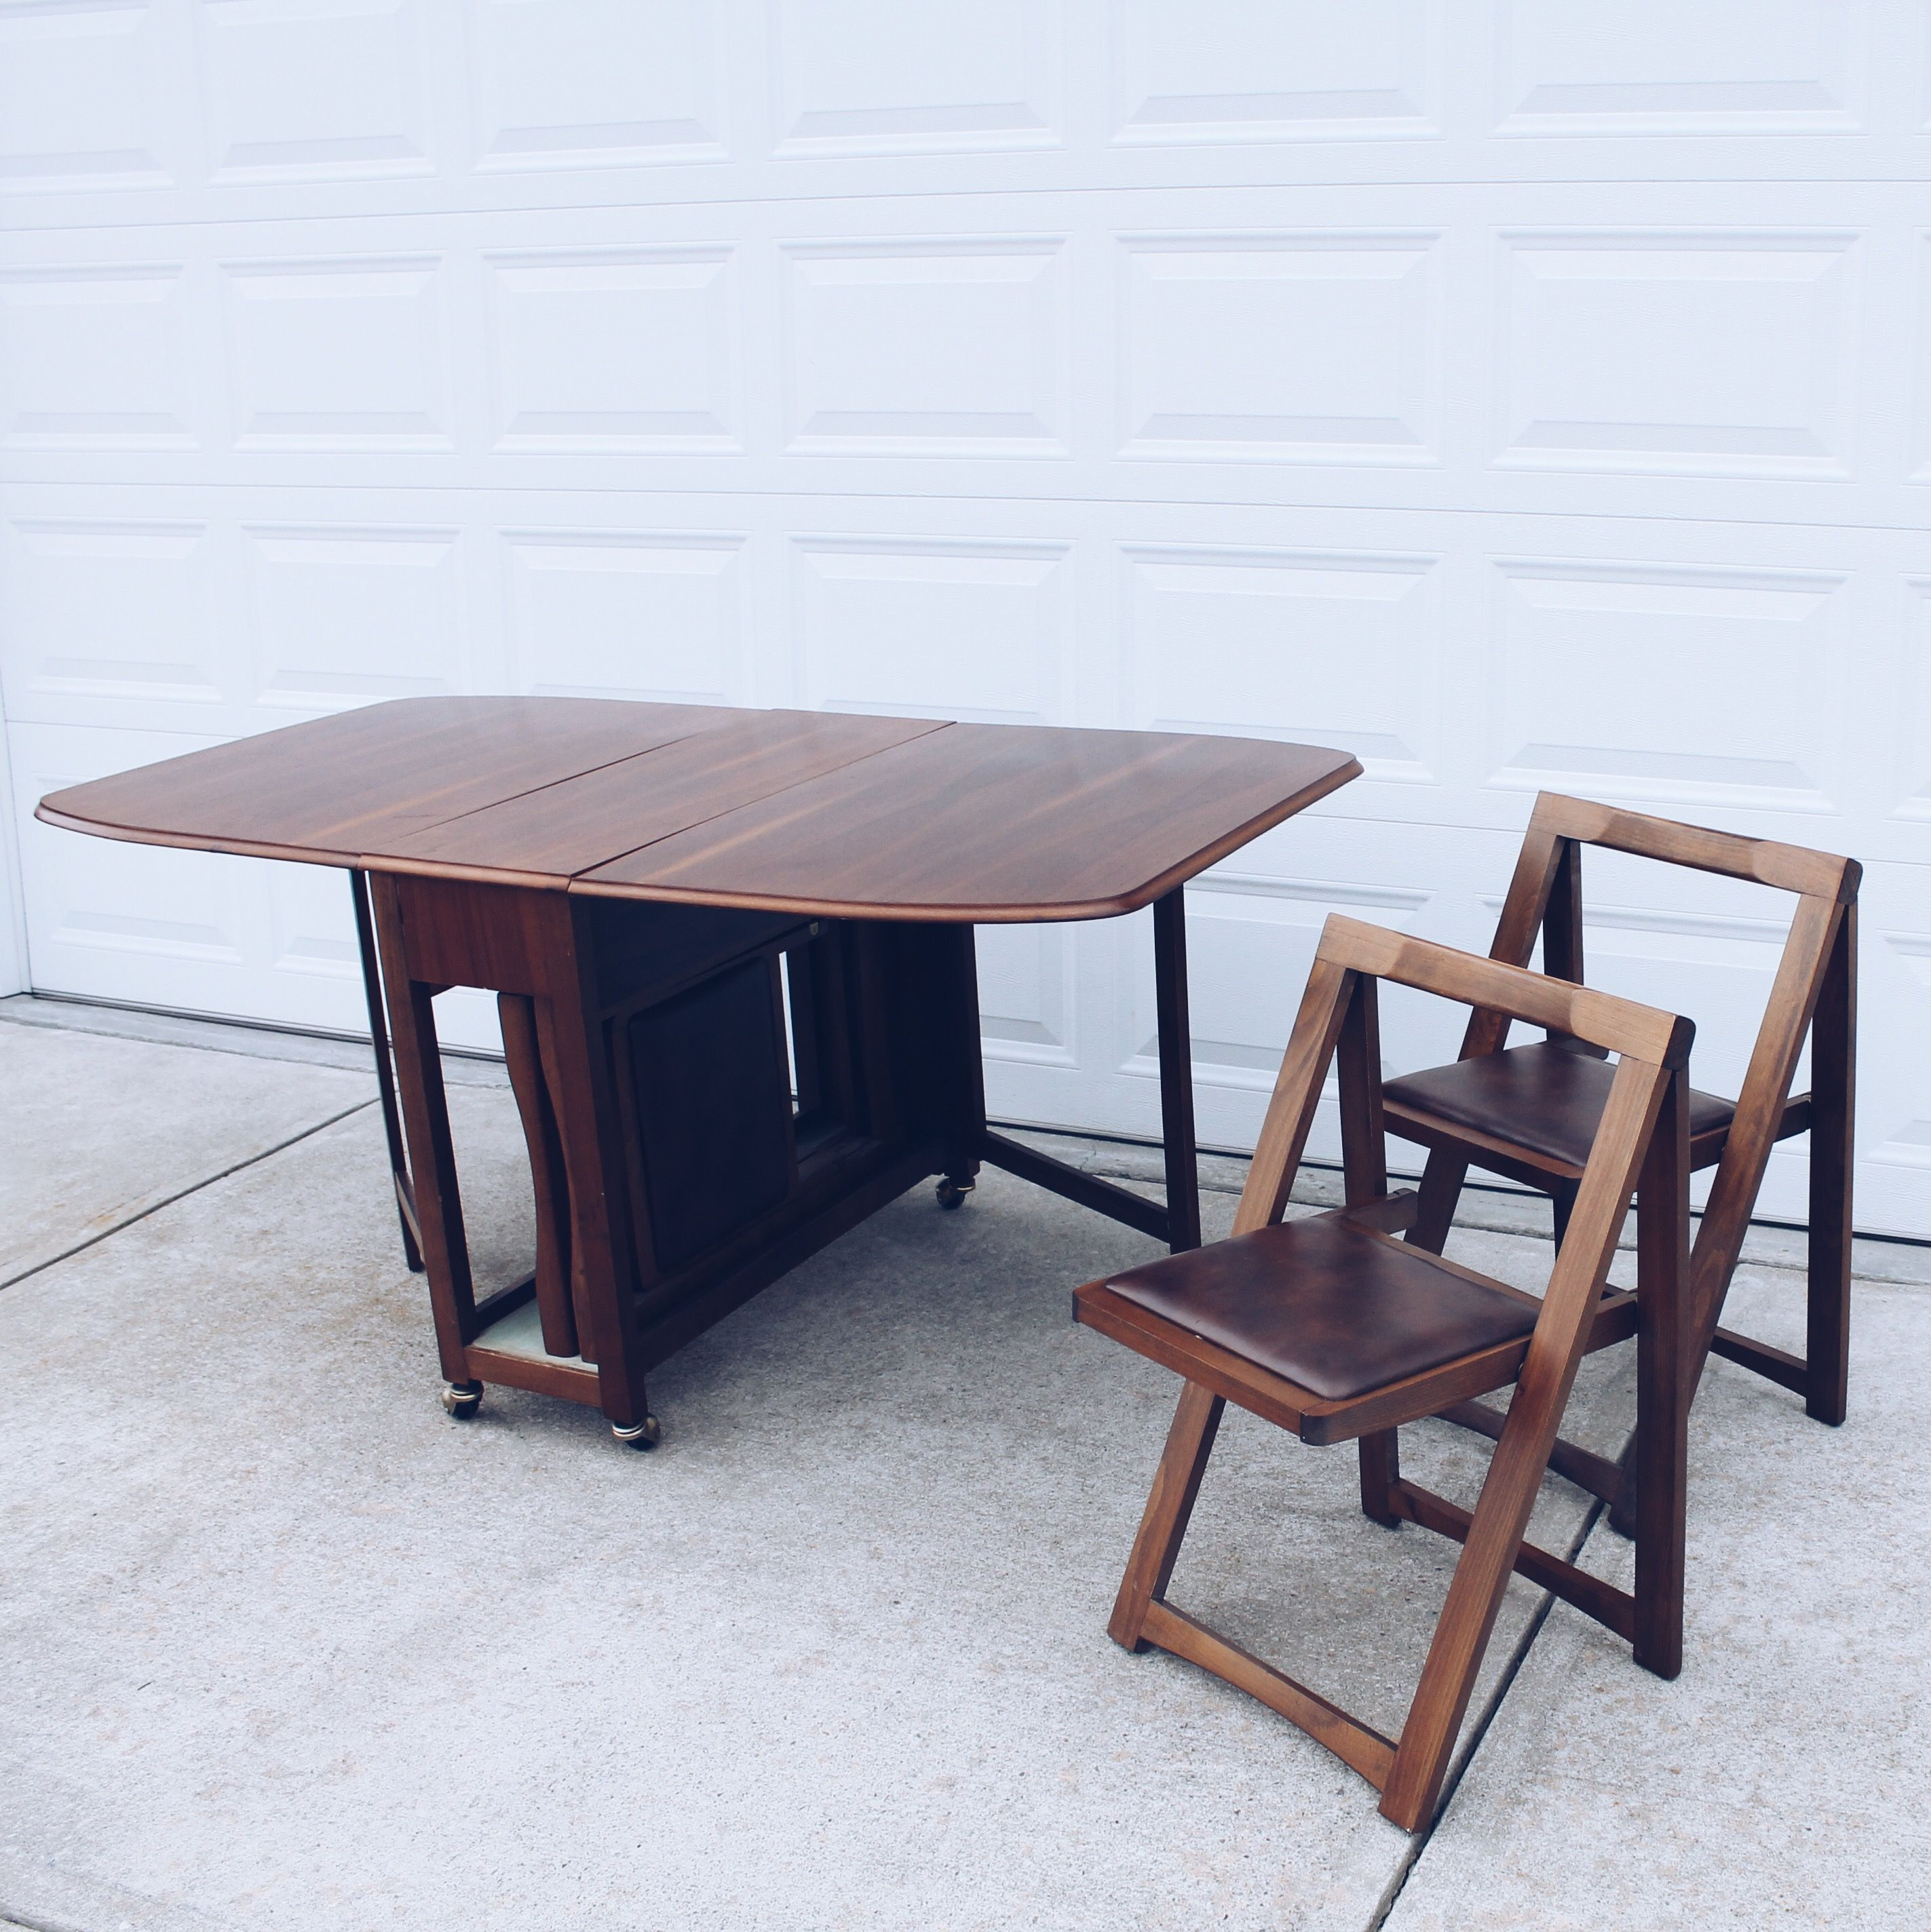 Drop Leaf Gateleg Dining Table With 4 Storable Chairs Set Chatham County Furniture Folding On Wheels